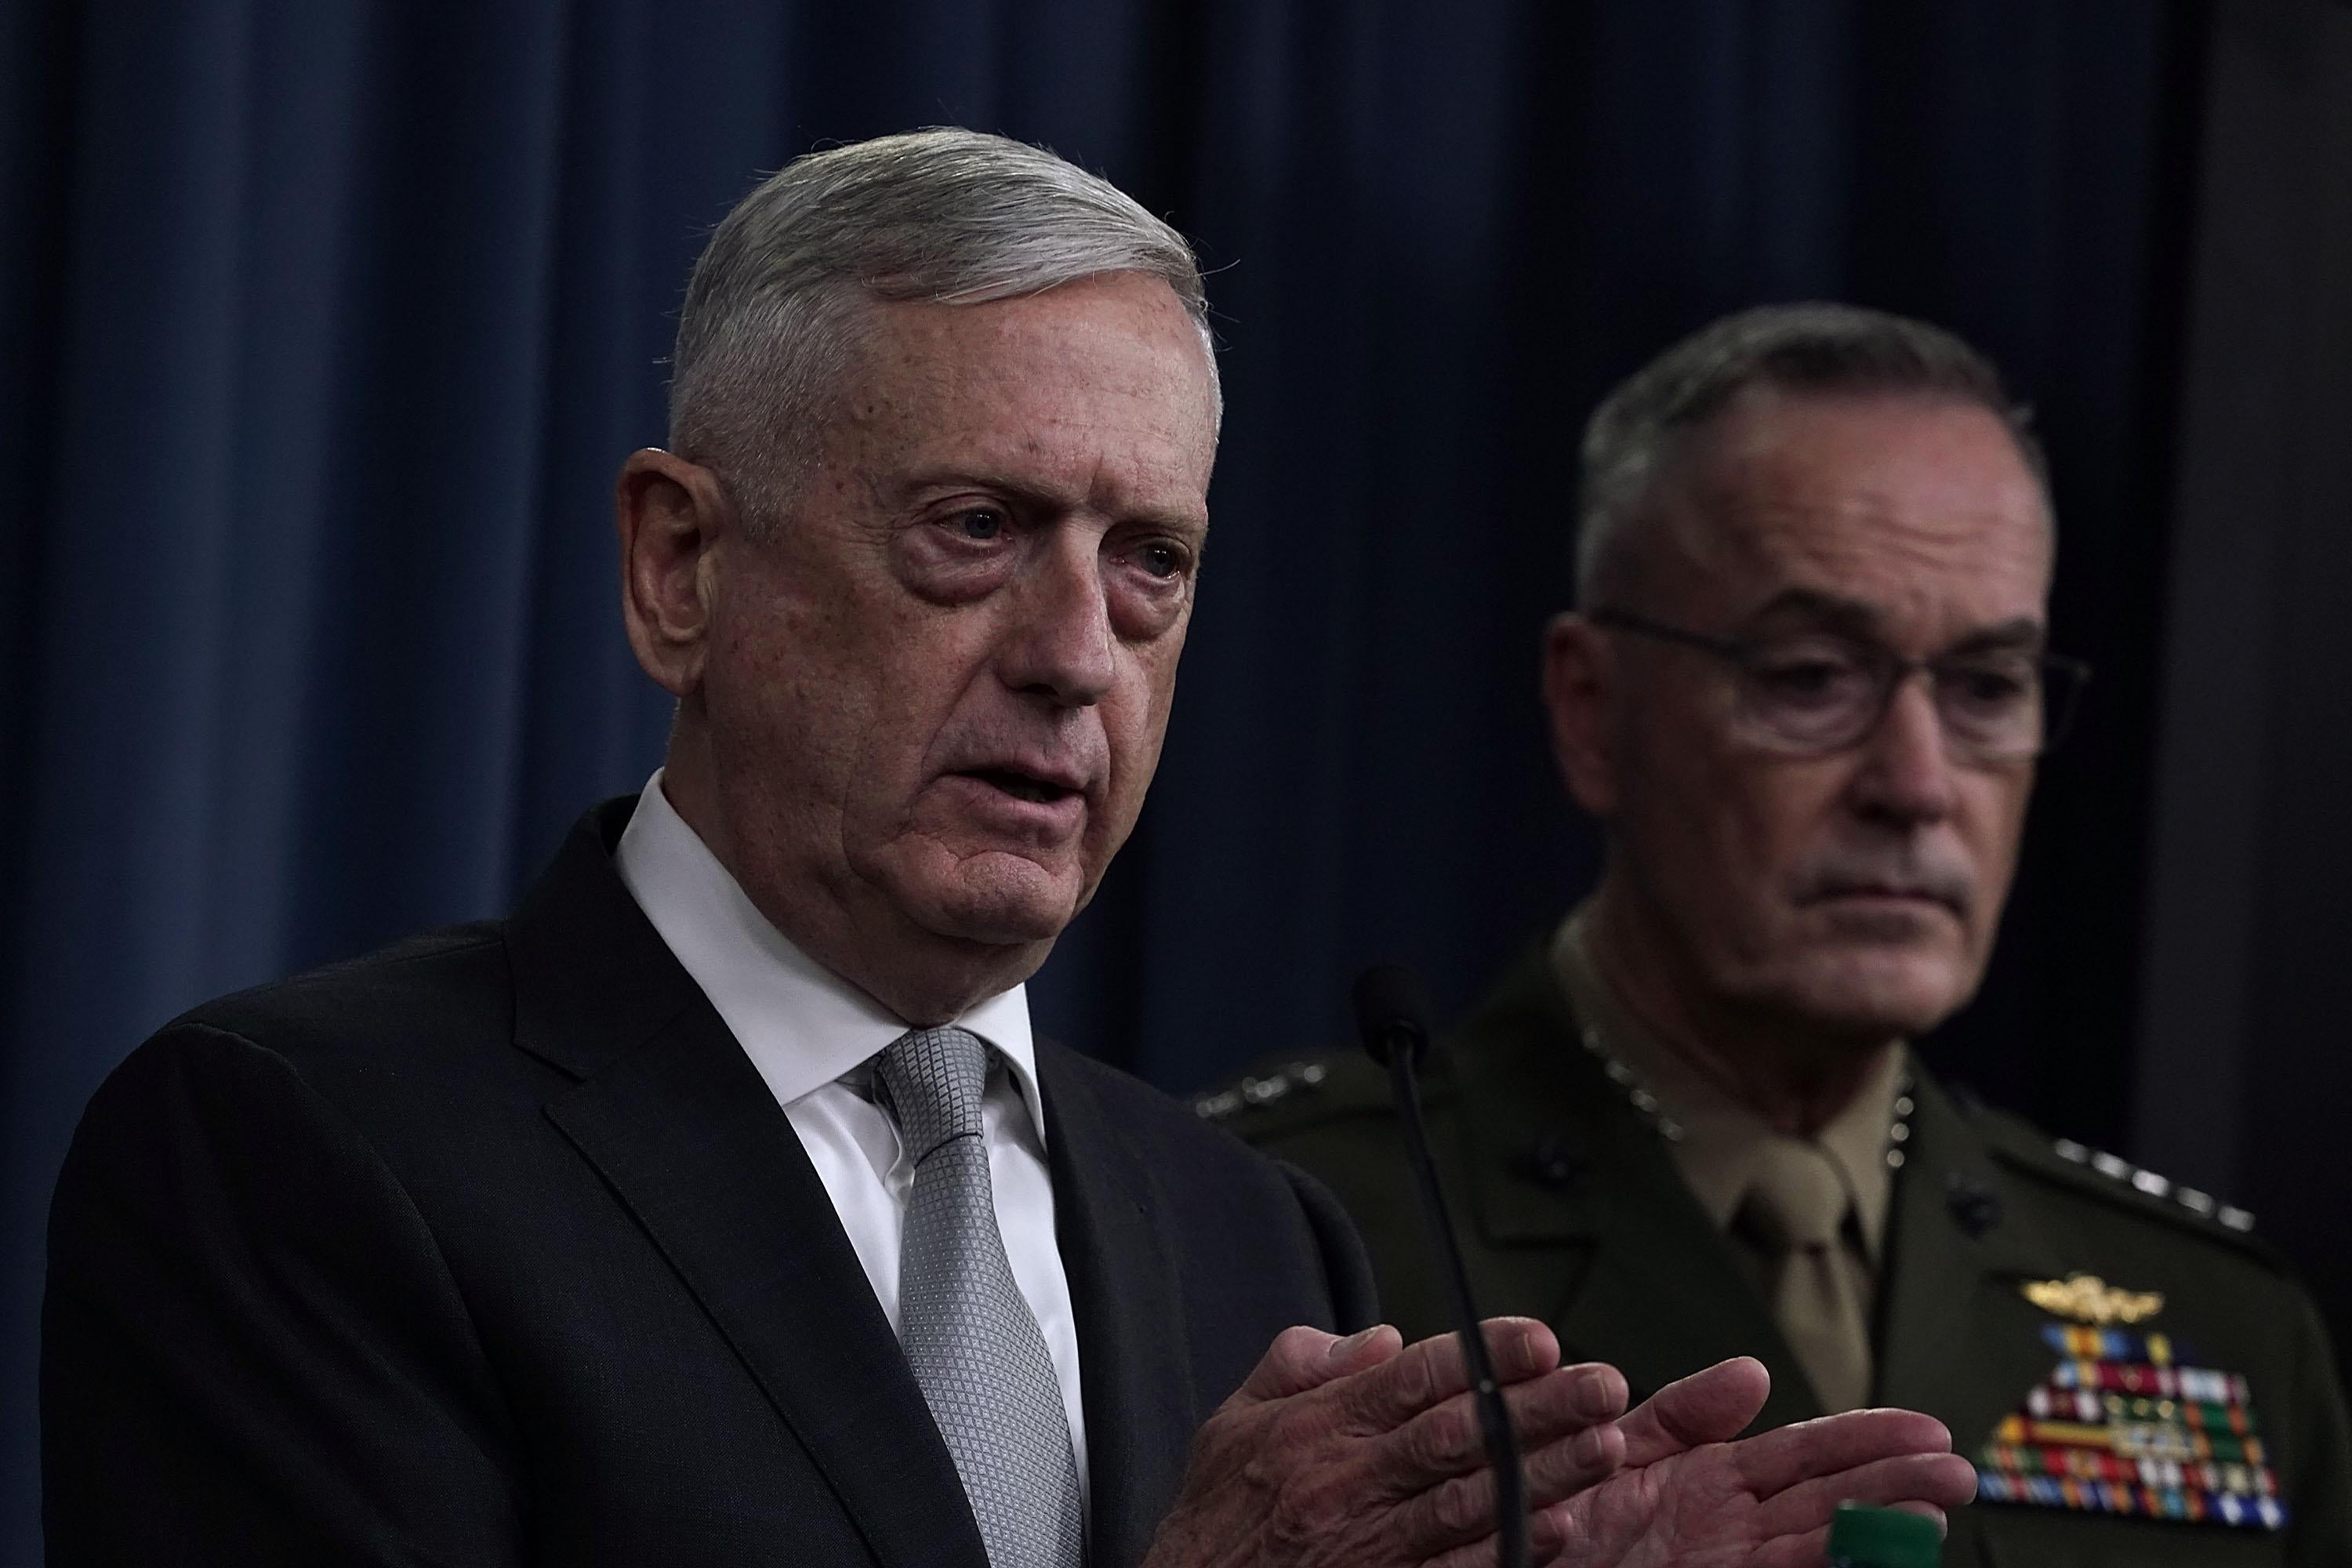 ARLINGTON, VA - APRIL 13:  U.S. U.S. Defense Secretary Jim Mattis (L) and Chairman of the Joint Chiefs of Staff Gen. Joseph Dunford (R) brief members of the media on Syria at the Pentagon April 13, 2018 in Arlington, Virginia. President Donald Trump has ordered a joint force strike on Syria with Britain and France over the recent suspected chemical attack by Syrian President Bashar al-Assad.  (Photo by Alex Wong/Getty Images)